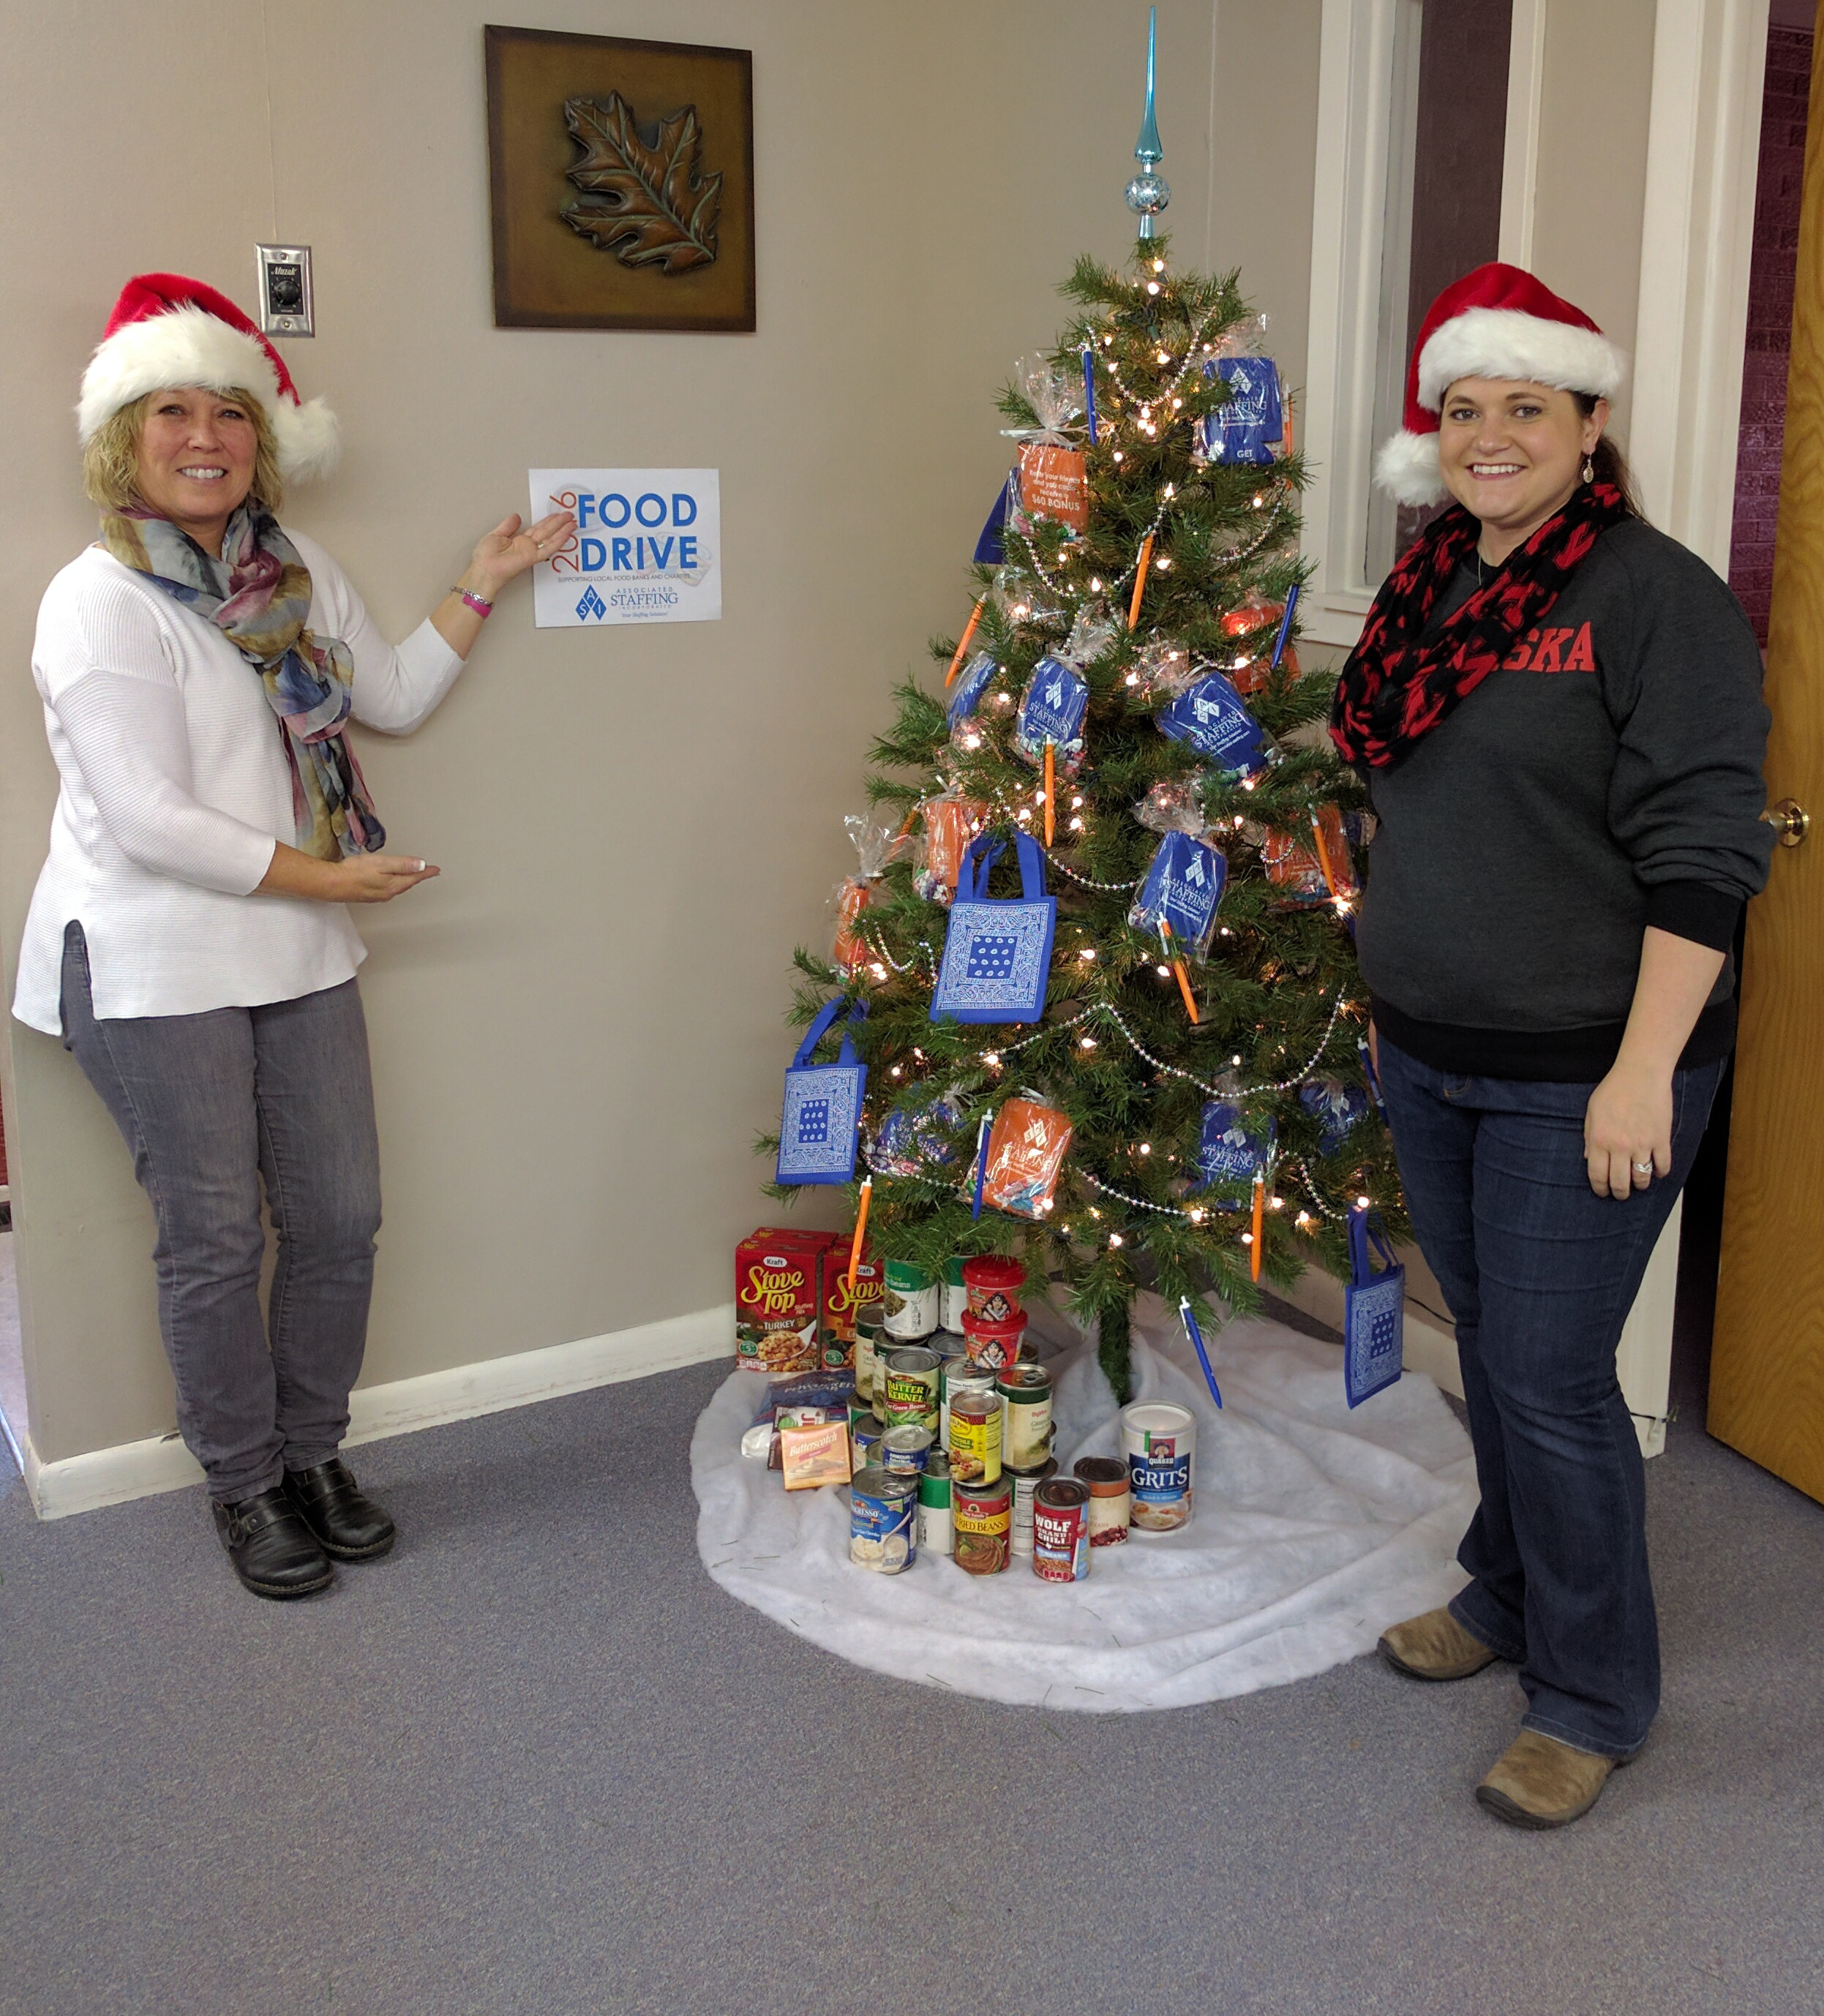 Kearney Branch Manager Kim and Kearney Recruiter Shonda with the start of their Food Drive donations.